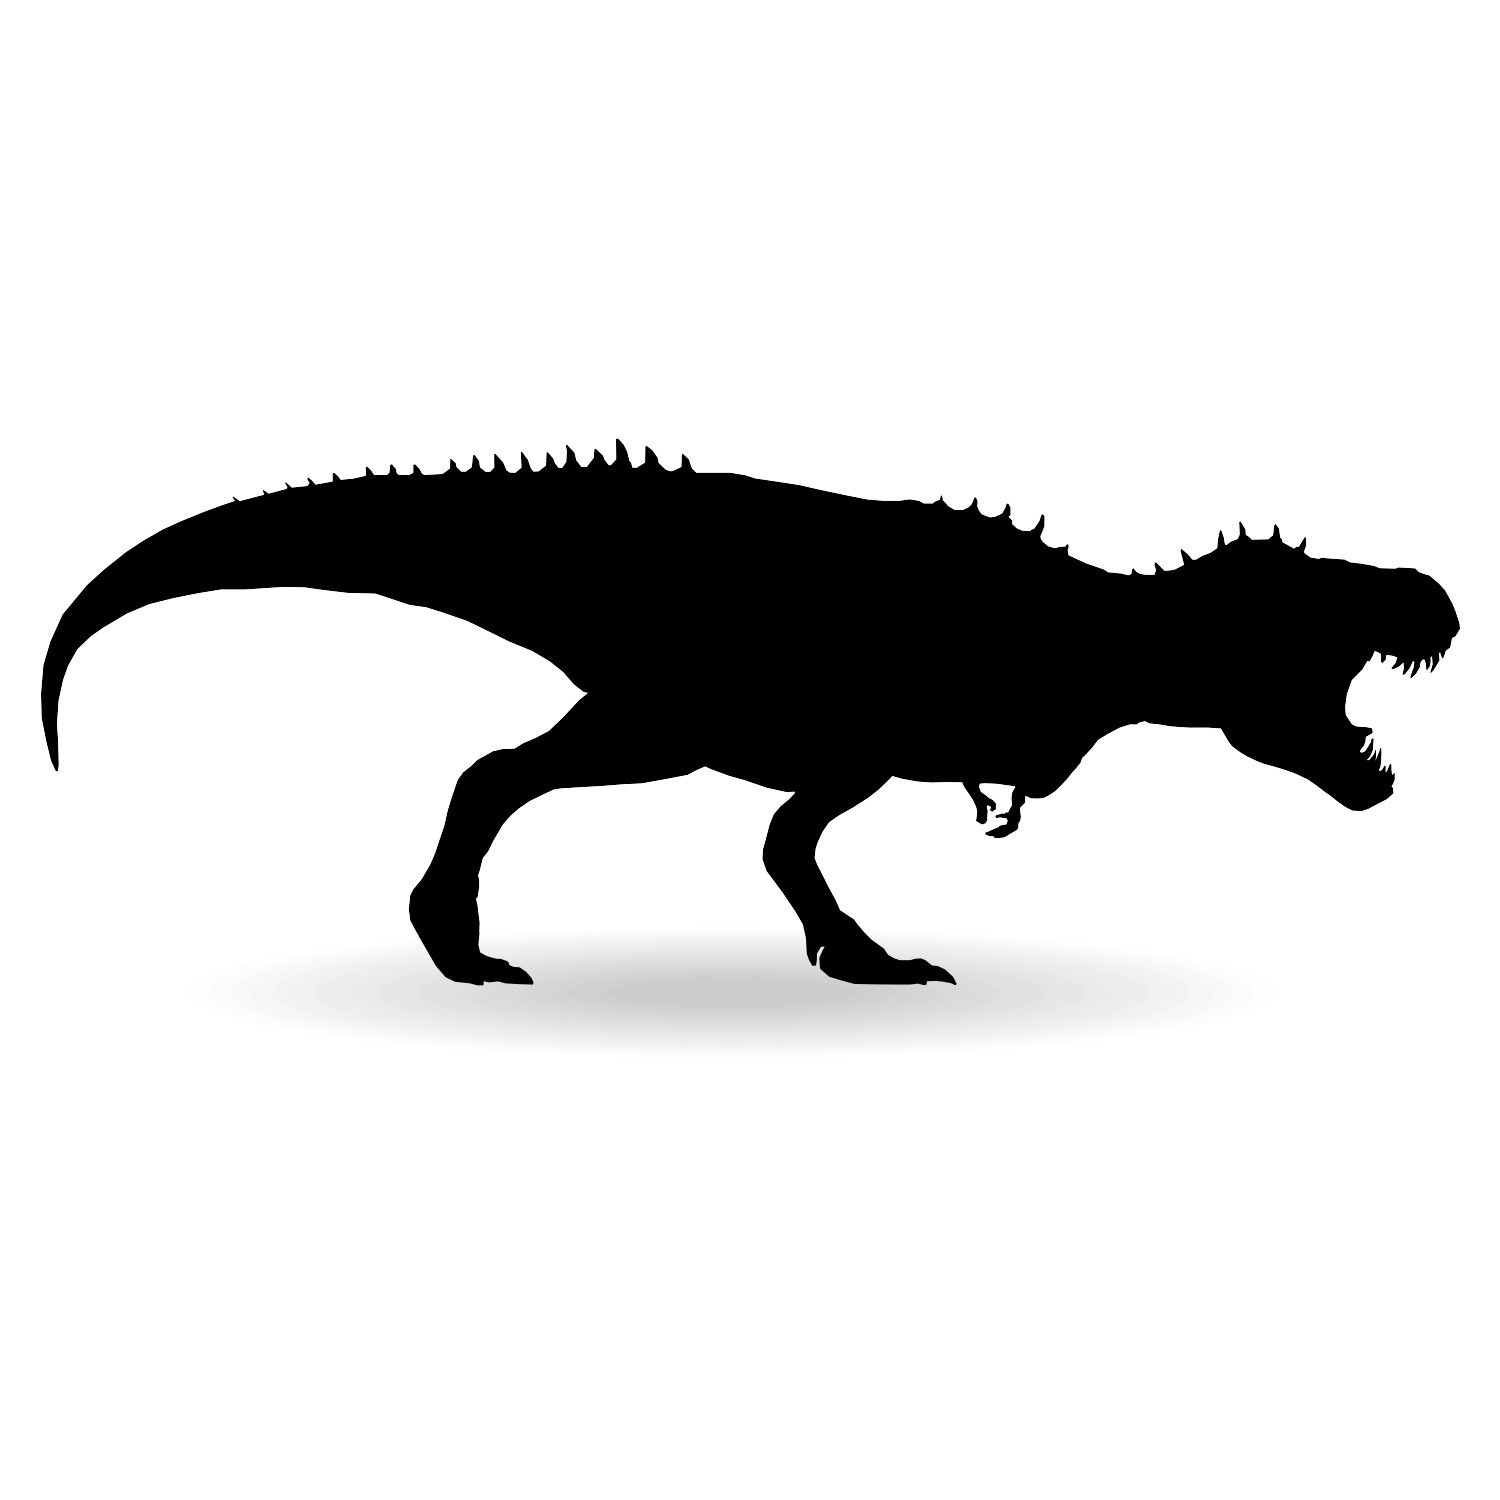 1500x1500 T Rex Dinosaur Silhouette Clipart China Cps Unusual Simple Endear